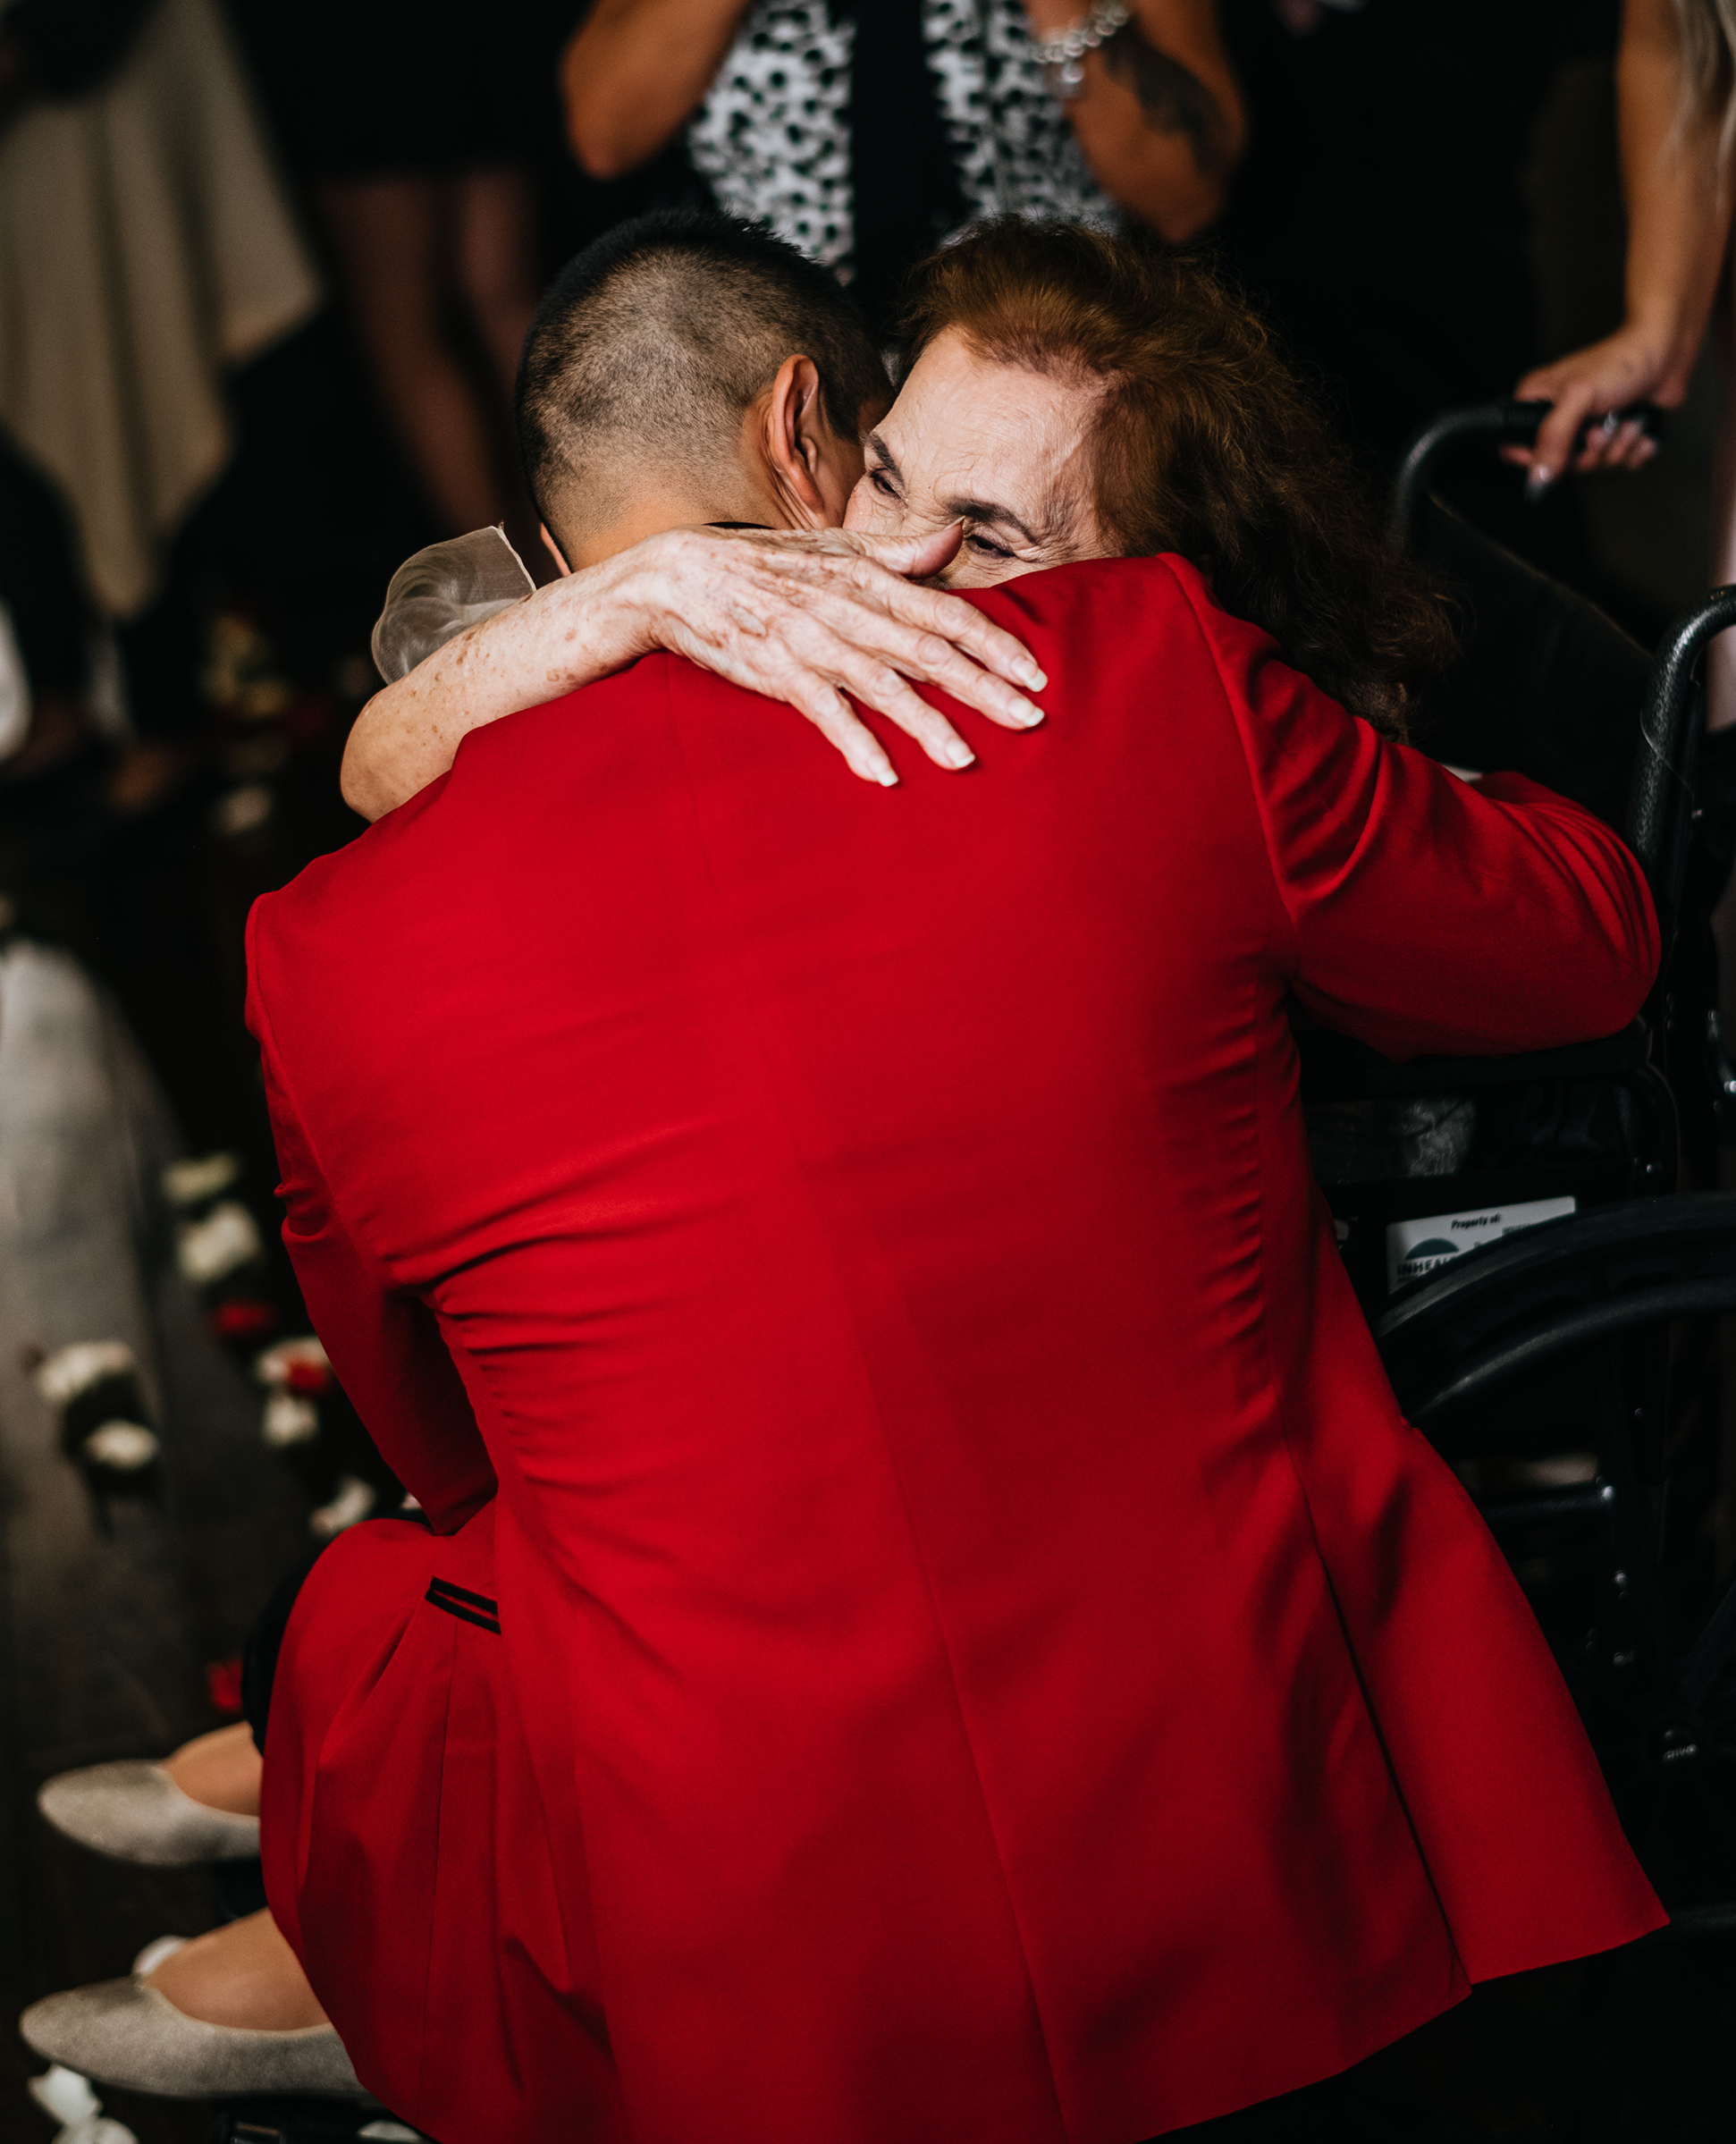 The groom is in a ruby red suitecoat hugging his grandmother who is in a wheelchair.